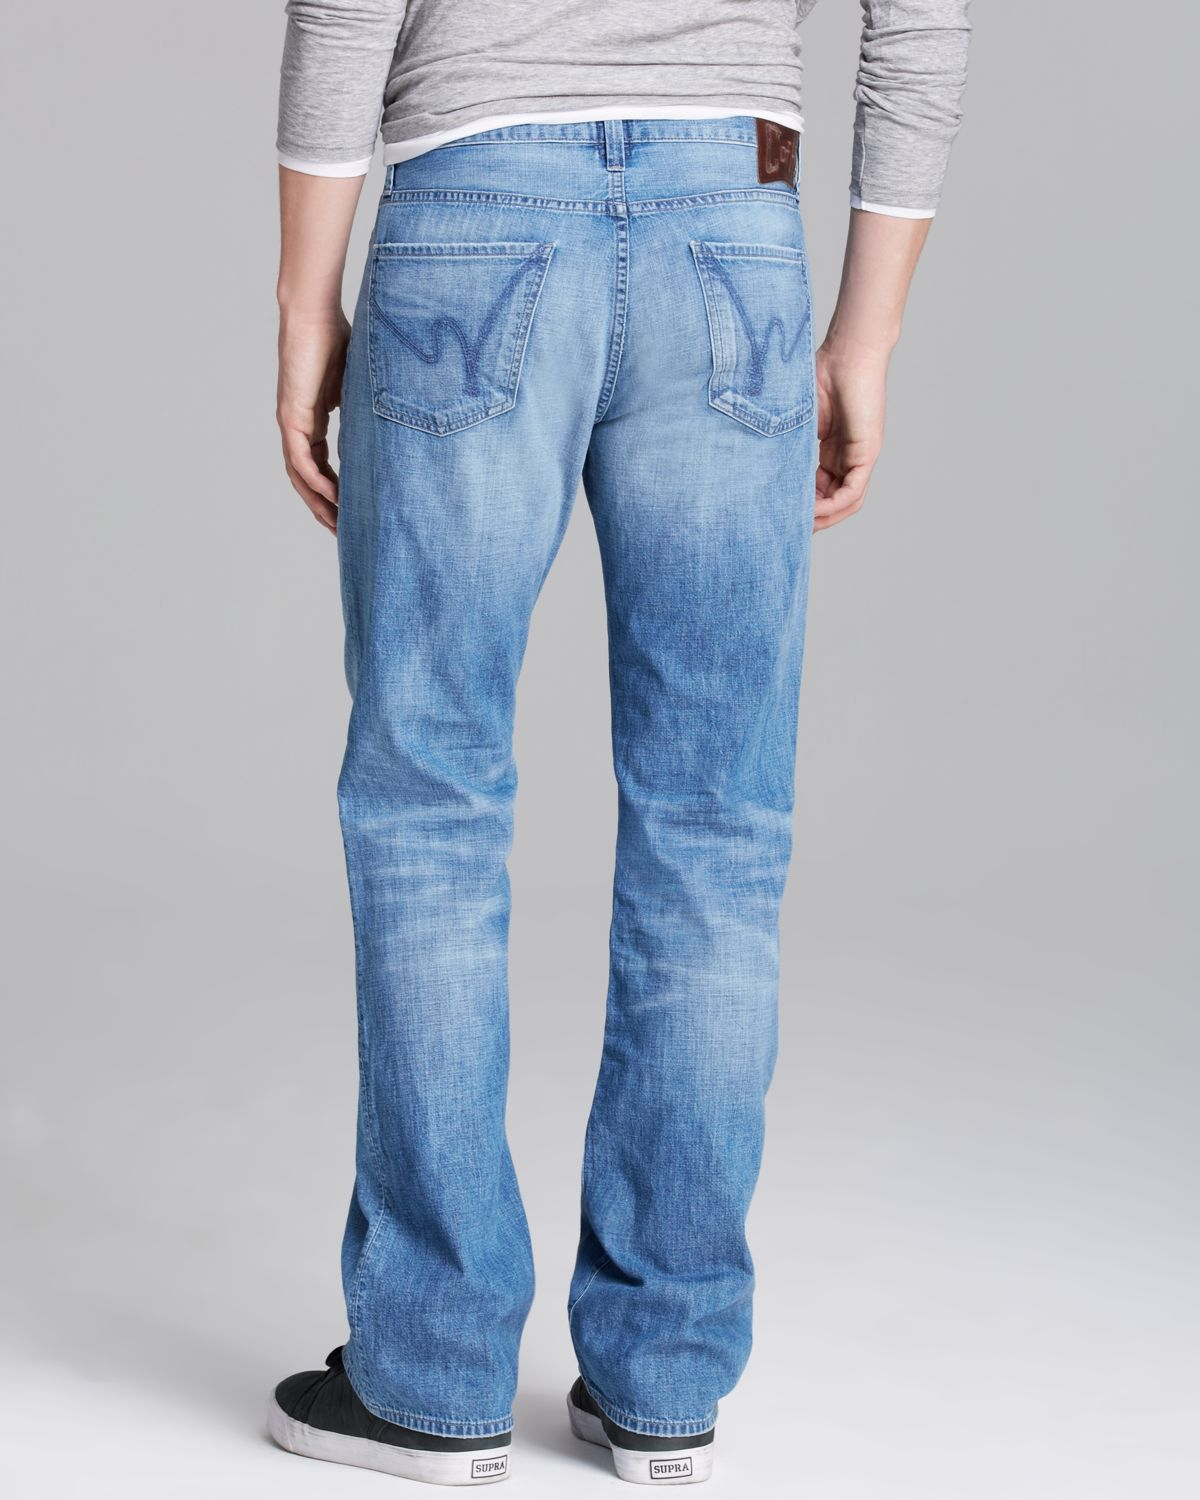 citizens of humanity jeans jagger bootcut fit in santa fe. Black Bedroom Furniture Sets. Home Design Ideas